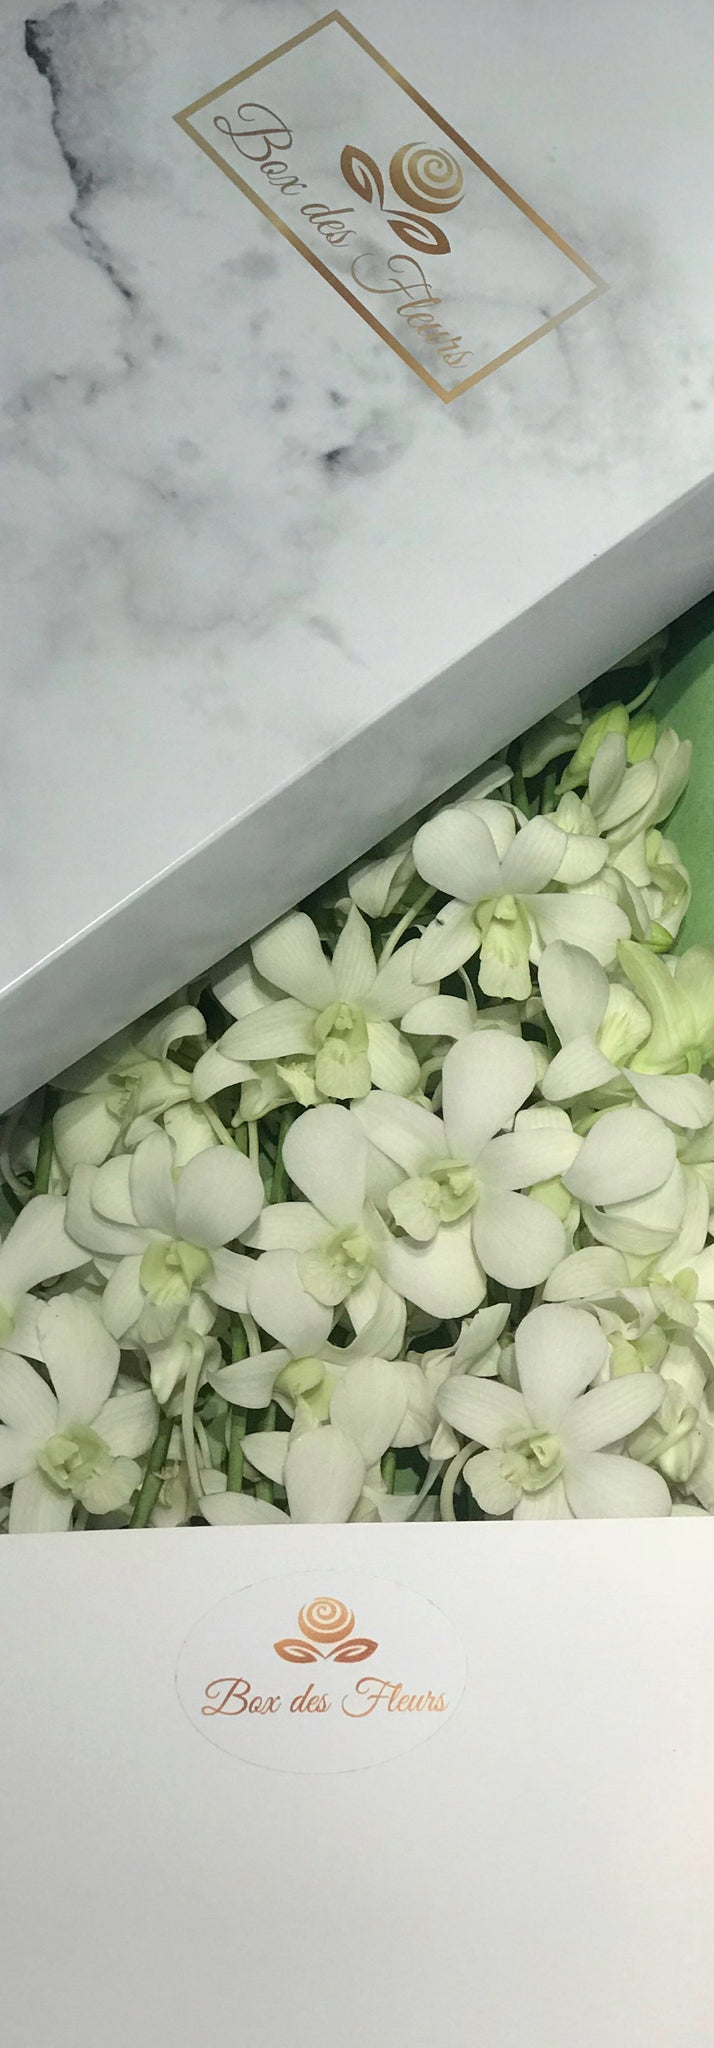 Montagne blanche box des fleurs montagne blanchewhiteorchidsbox des fleursbaby showerits a girl gifts foe herbaby girl mothers daymothers day gift flowers negle Image collections